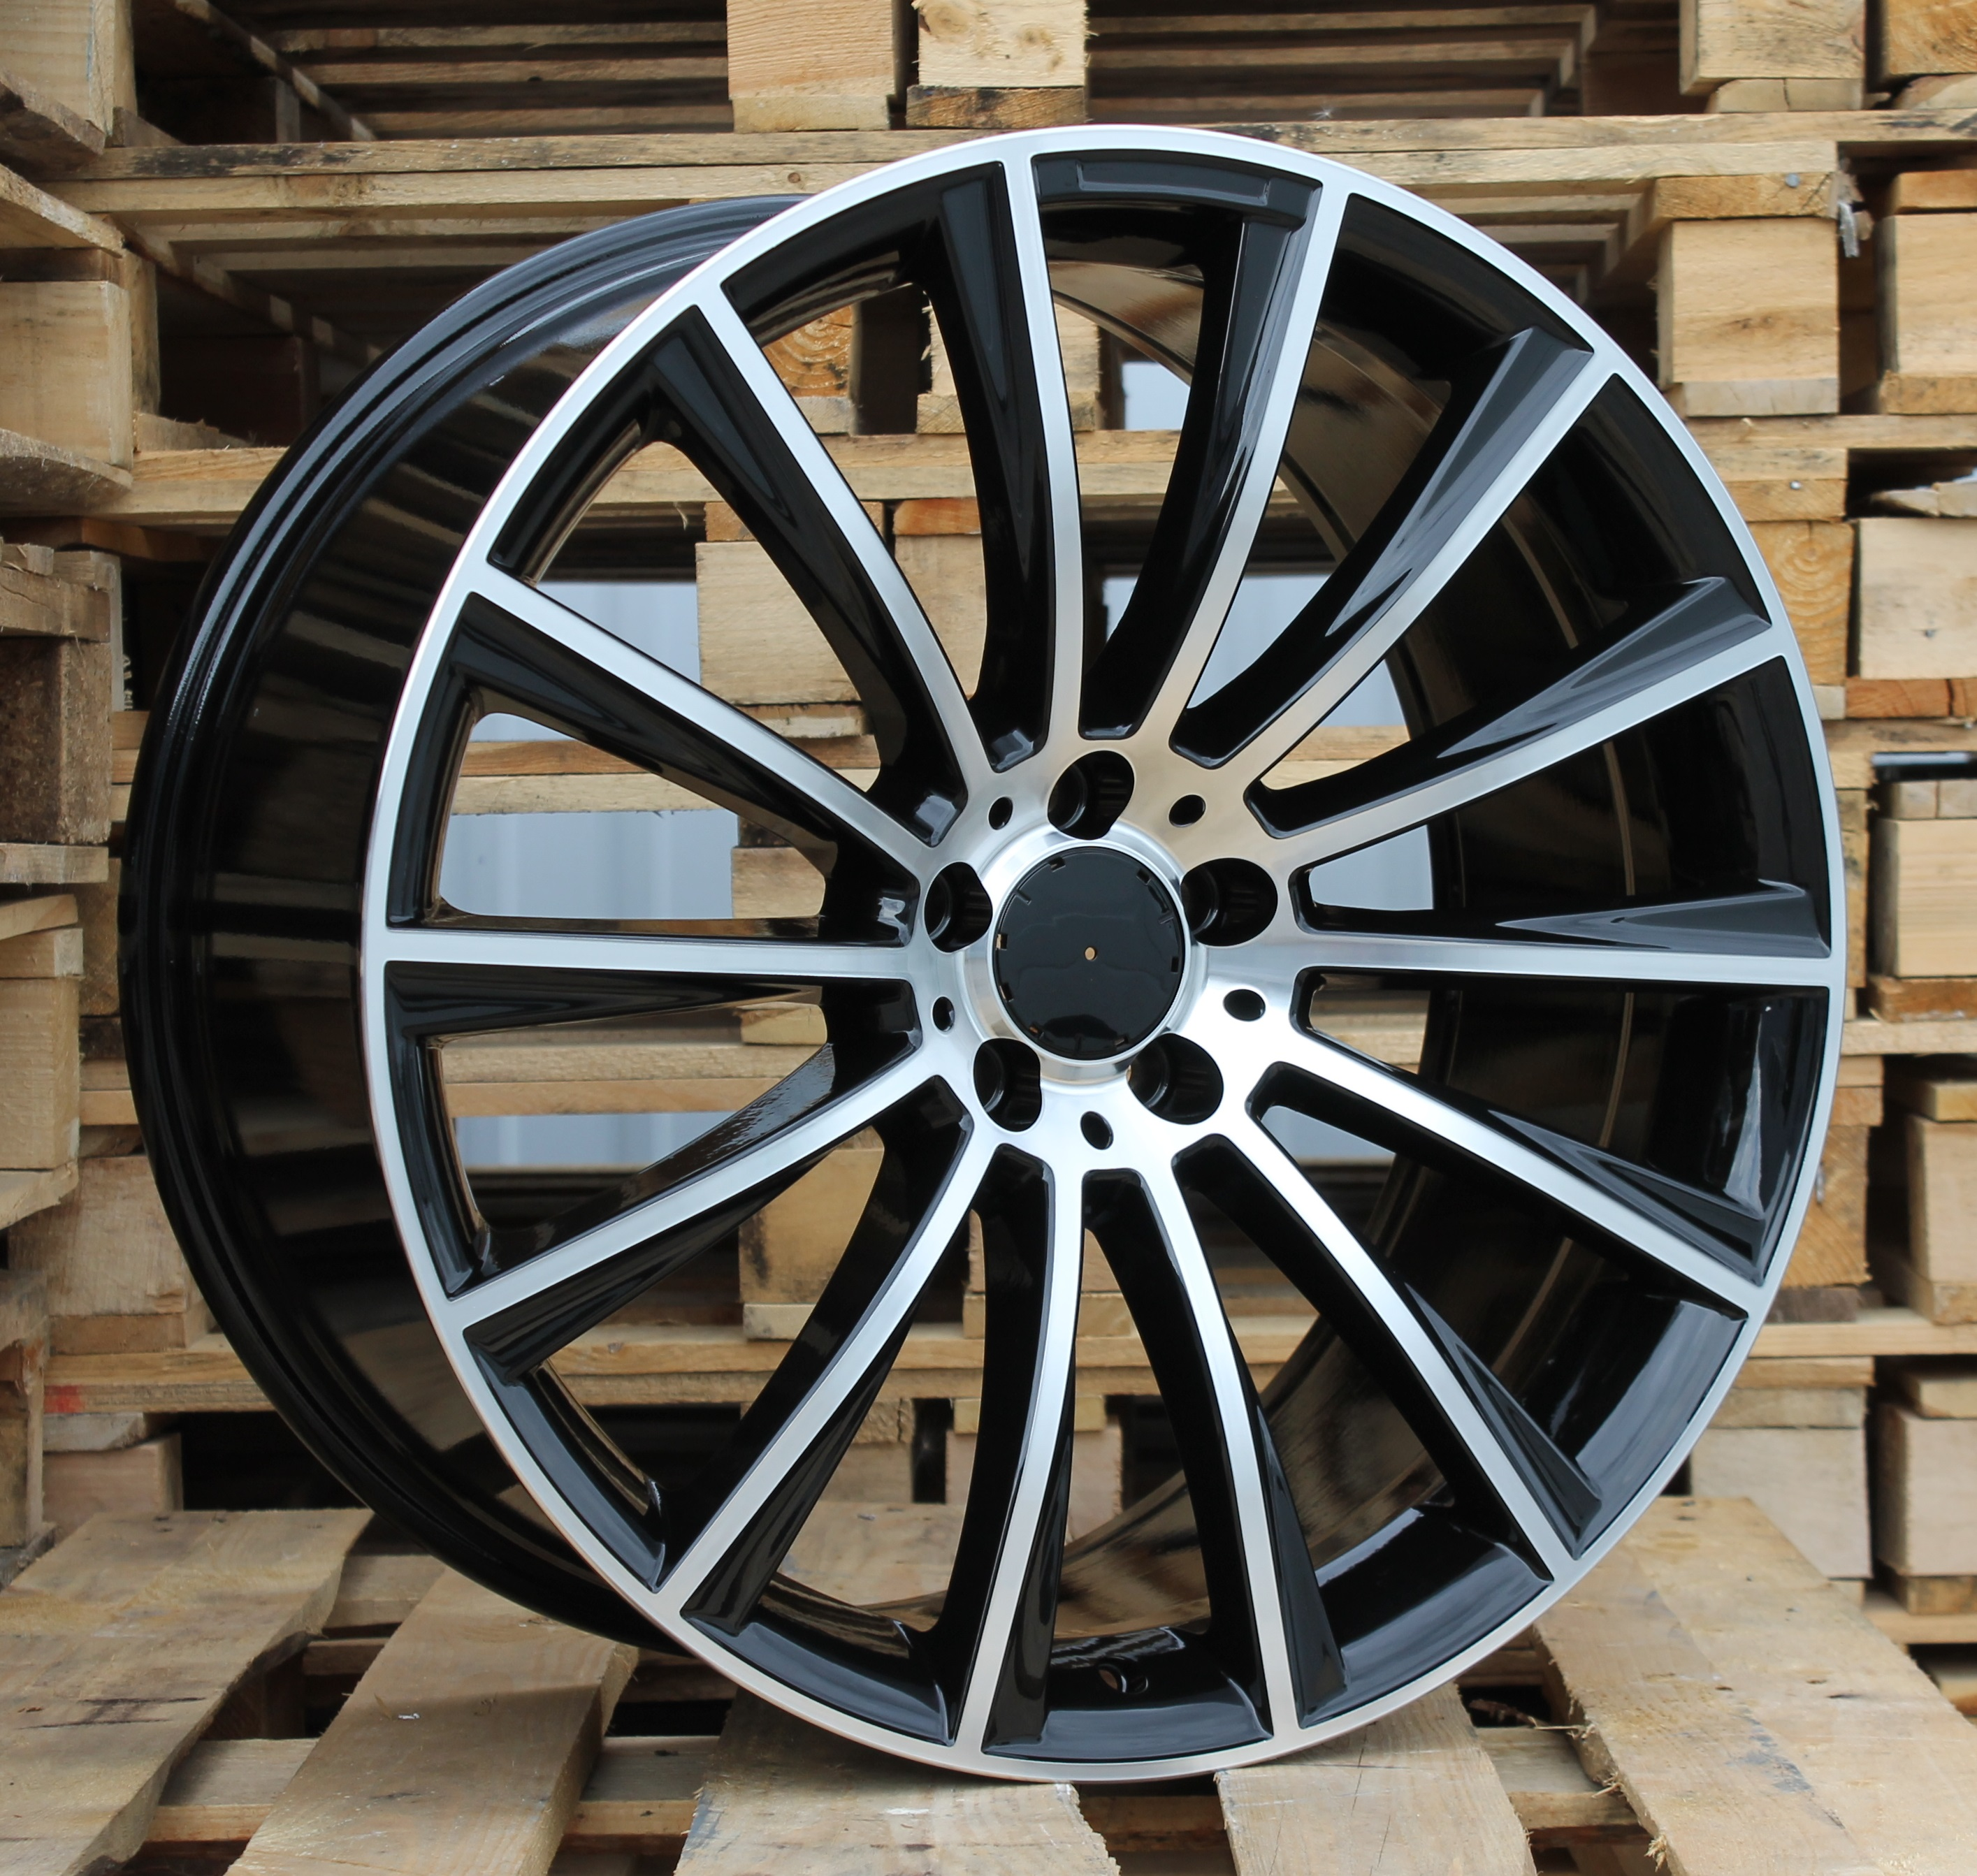 M19X9.5 5X112 ET43 66.6 BY1048 MB+Powder Coating (Rear+Front) RWR MER (+3eur) (K4)## 9.5x19 ET46 5x112